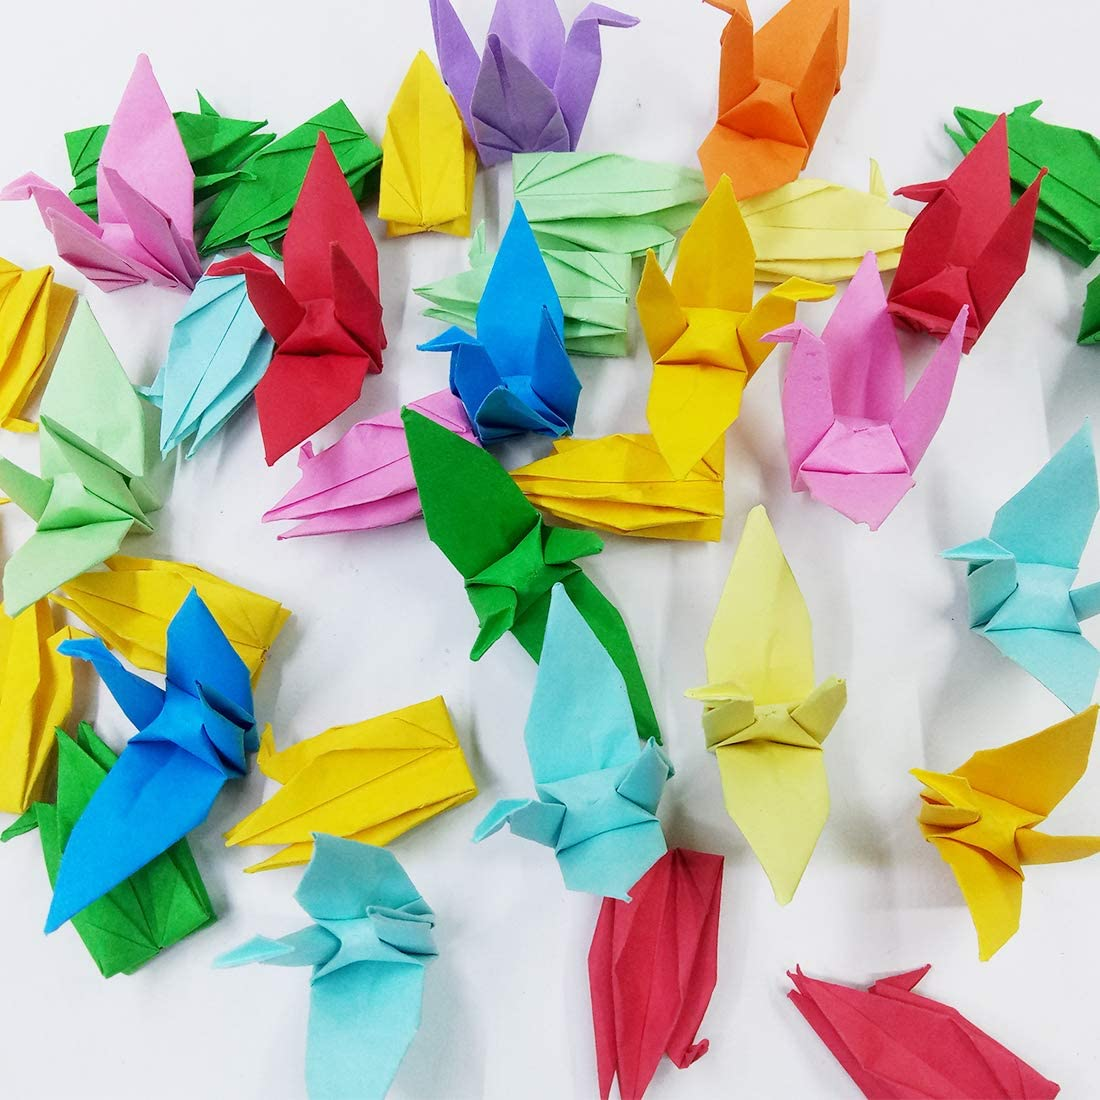 Morndew 50 PCS Origami Paper Cranes Folded DIY Paper Cranes for Wedding Party Birthday Party Children Party Backdrop Home Decoration - Mixed Colors